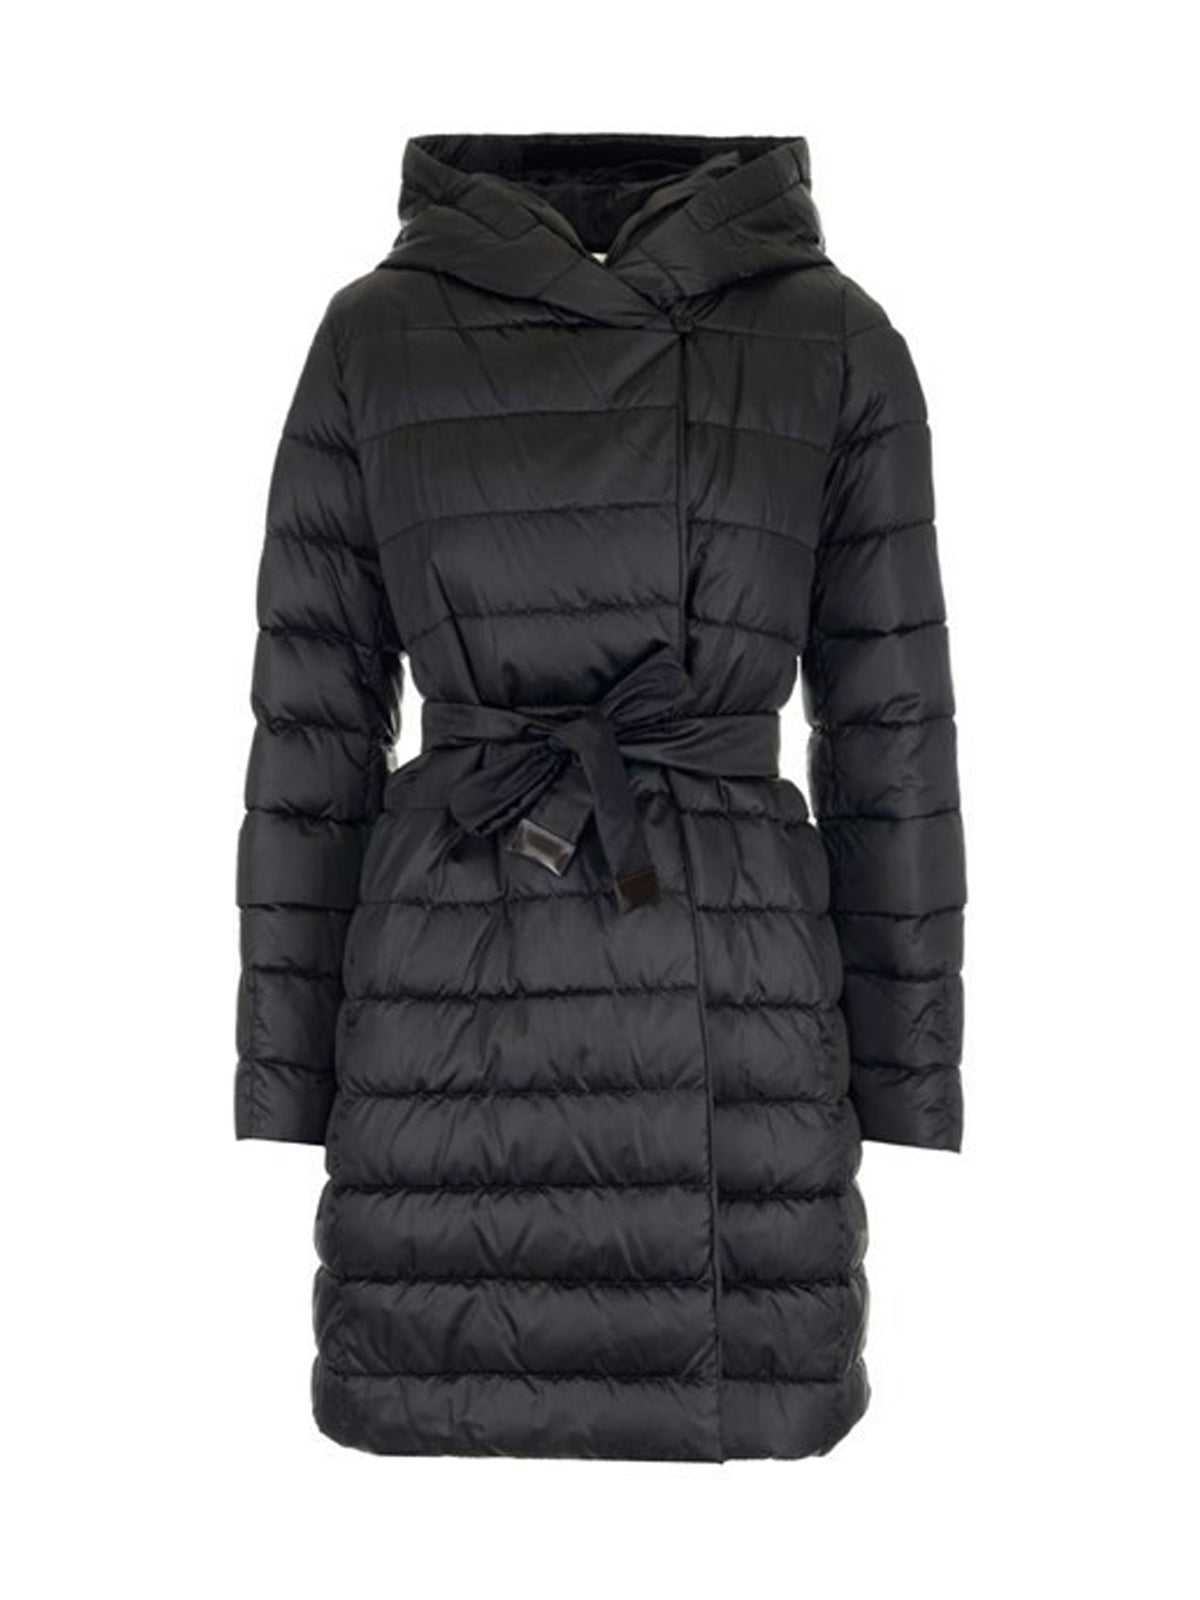 Novef long down jacket